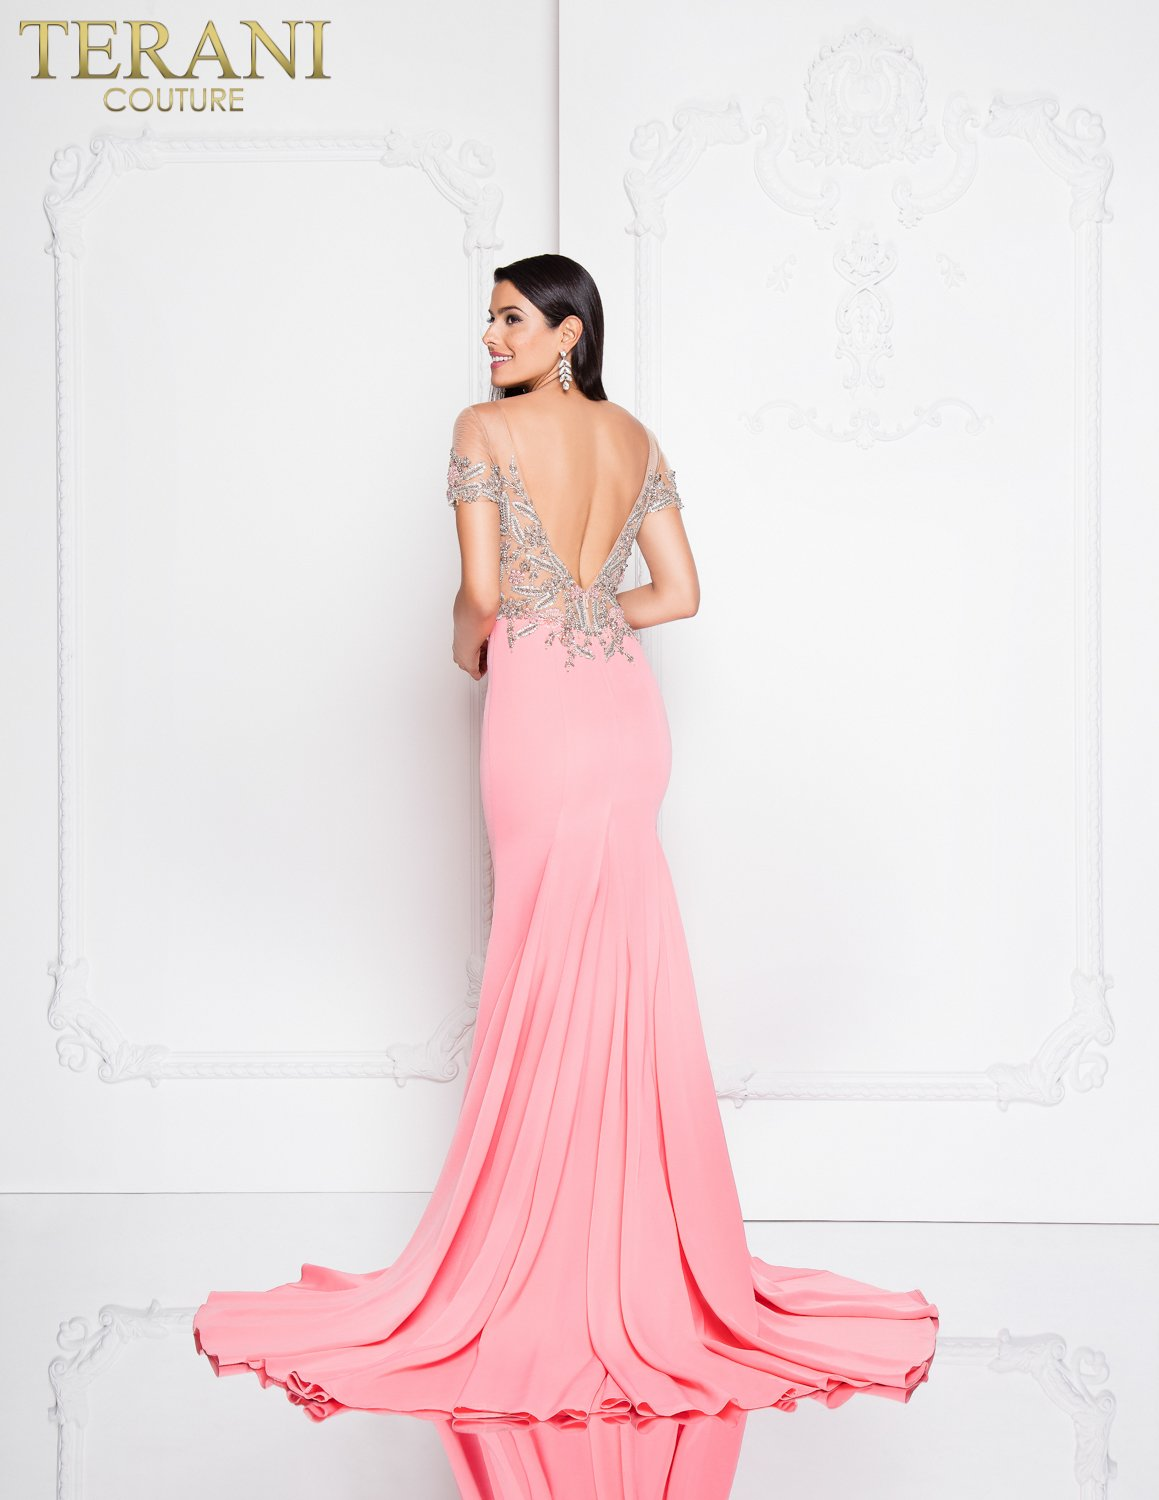 Fitted Off the Shoulder High Slit Prom Dress – 1812P5362